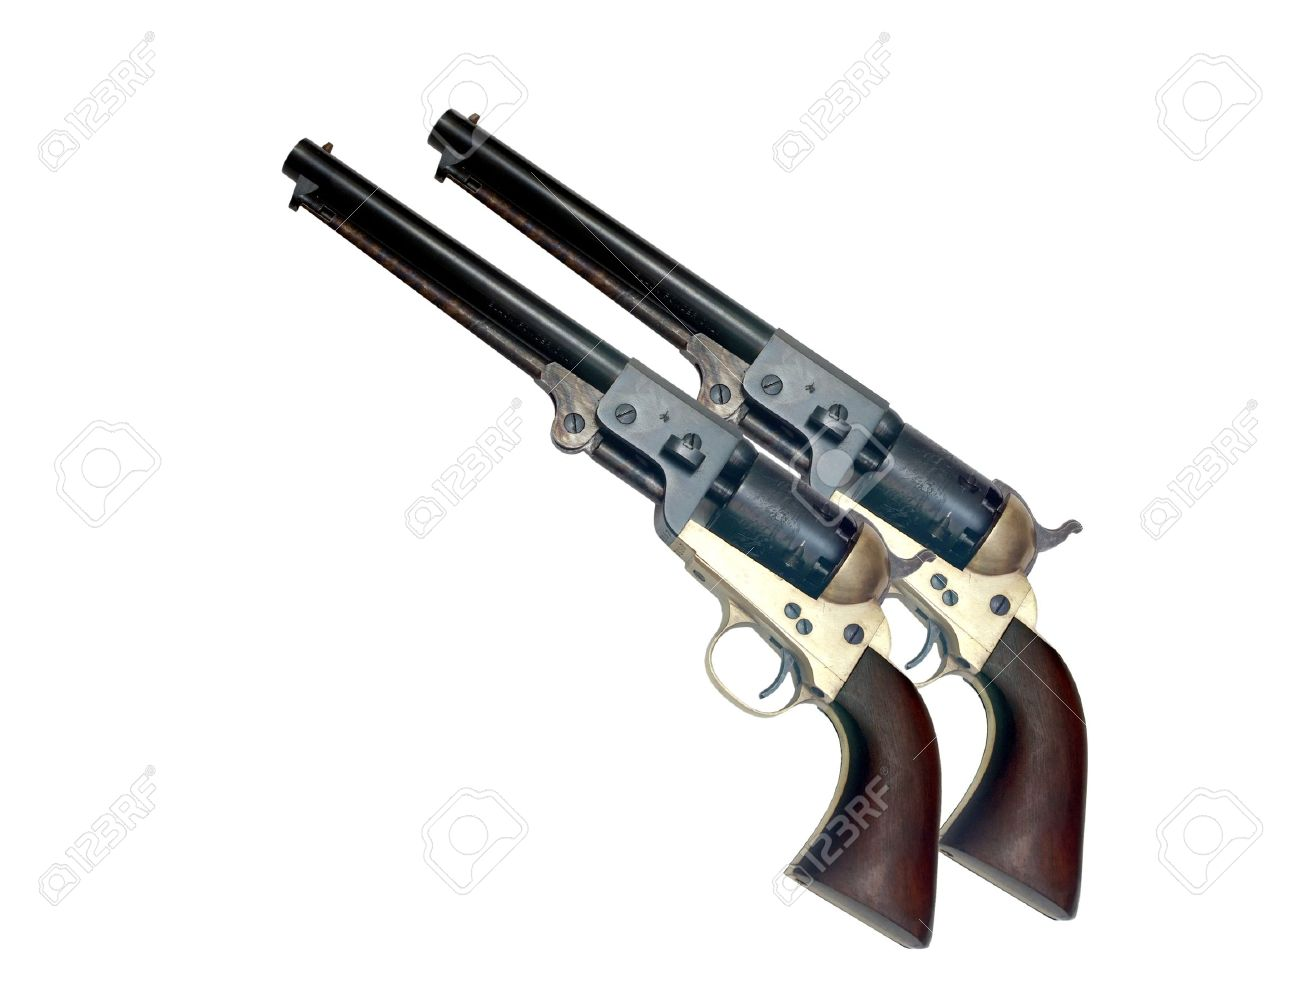 two identical old metal colt revolver on white background - 11052911